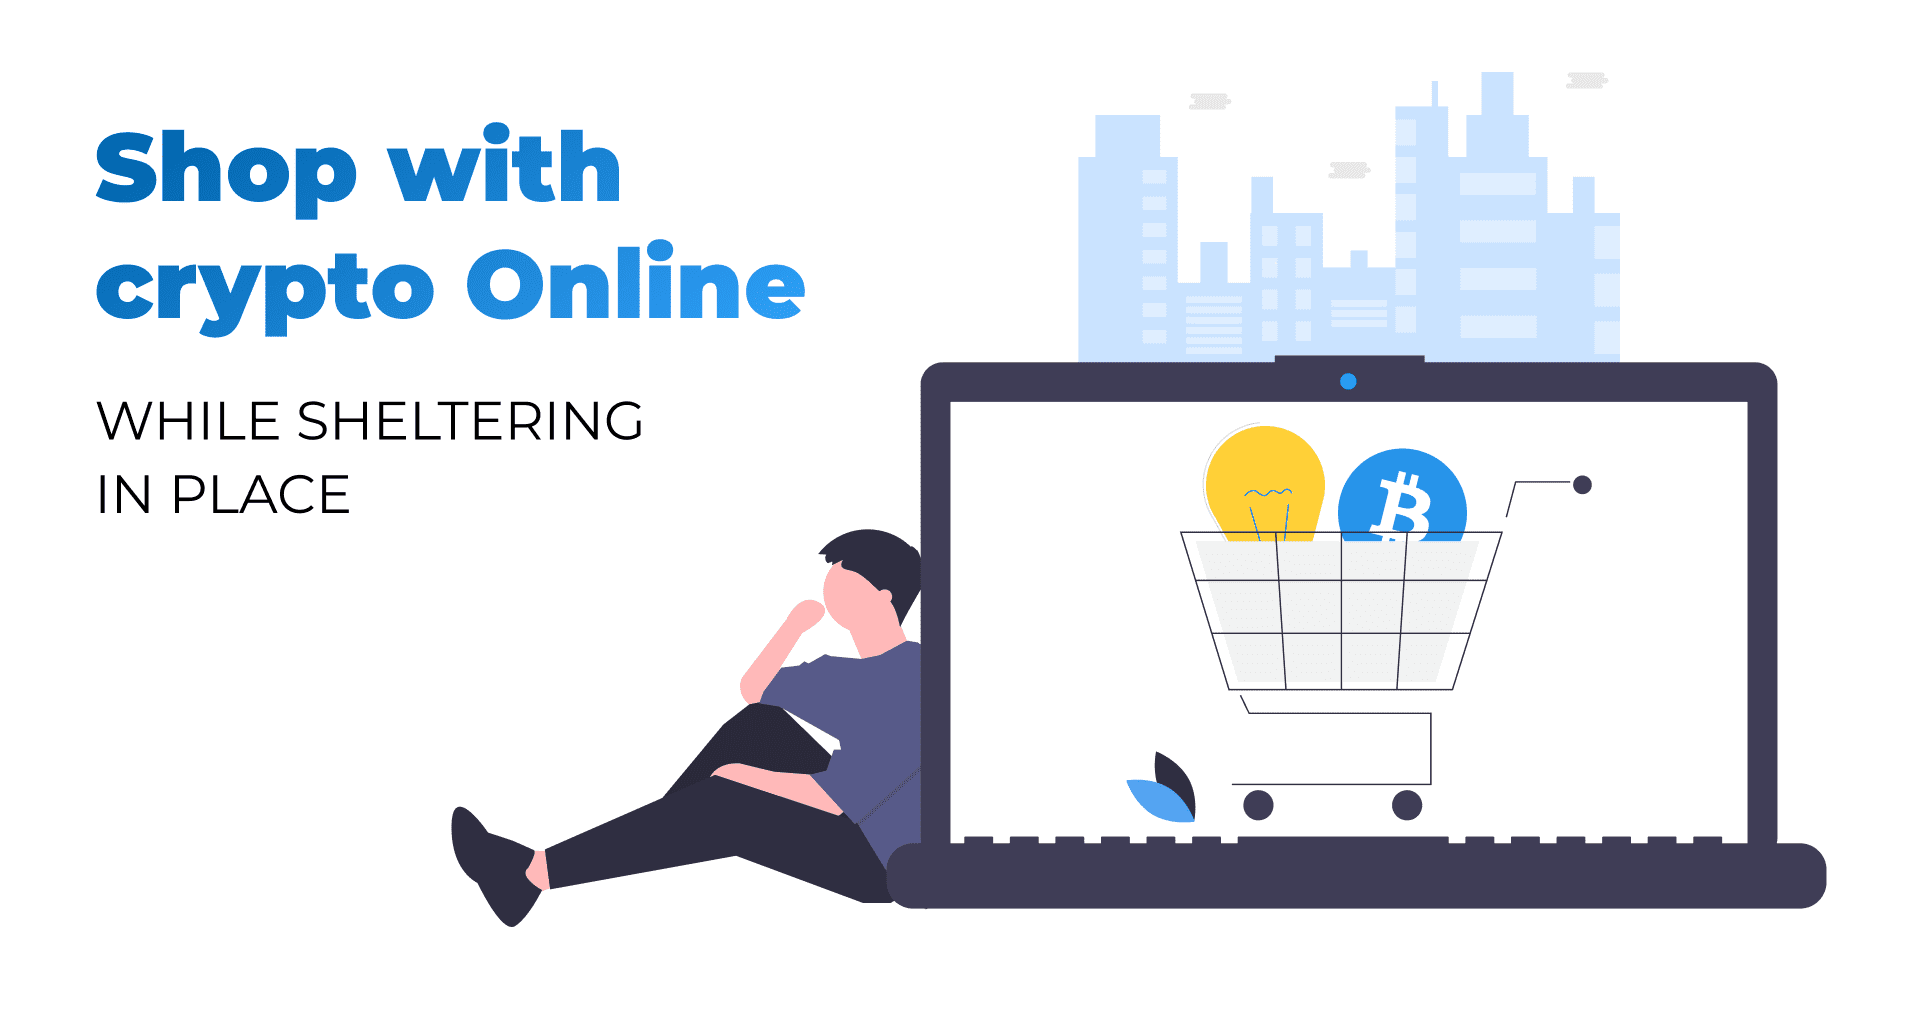 shop_with_crypto